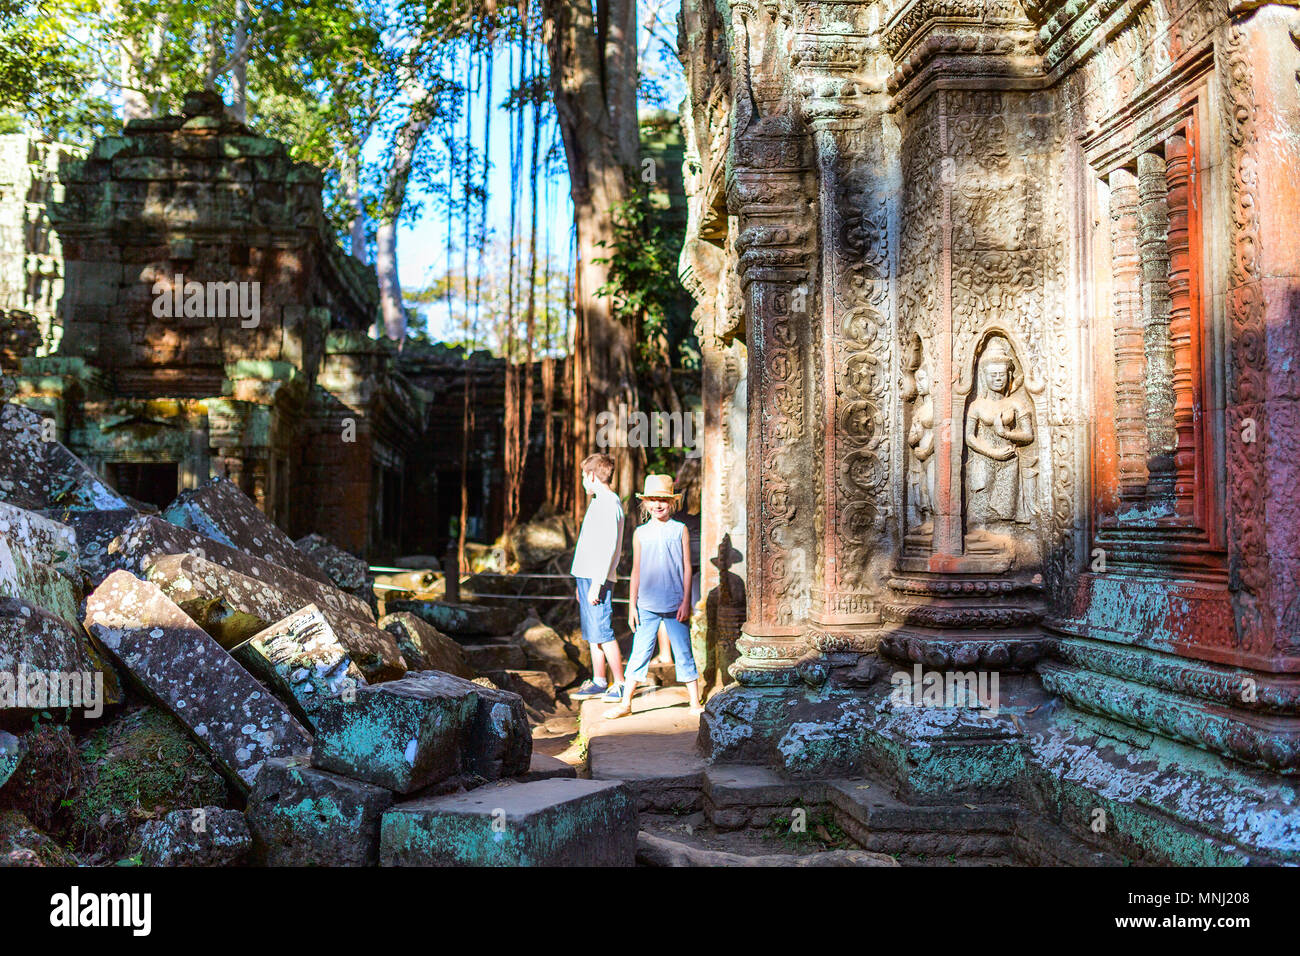 Kids at ancient Angkor temple complex in Siem Reap in Cambodia - Stock Image